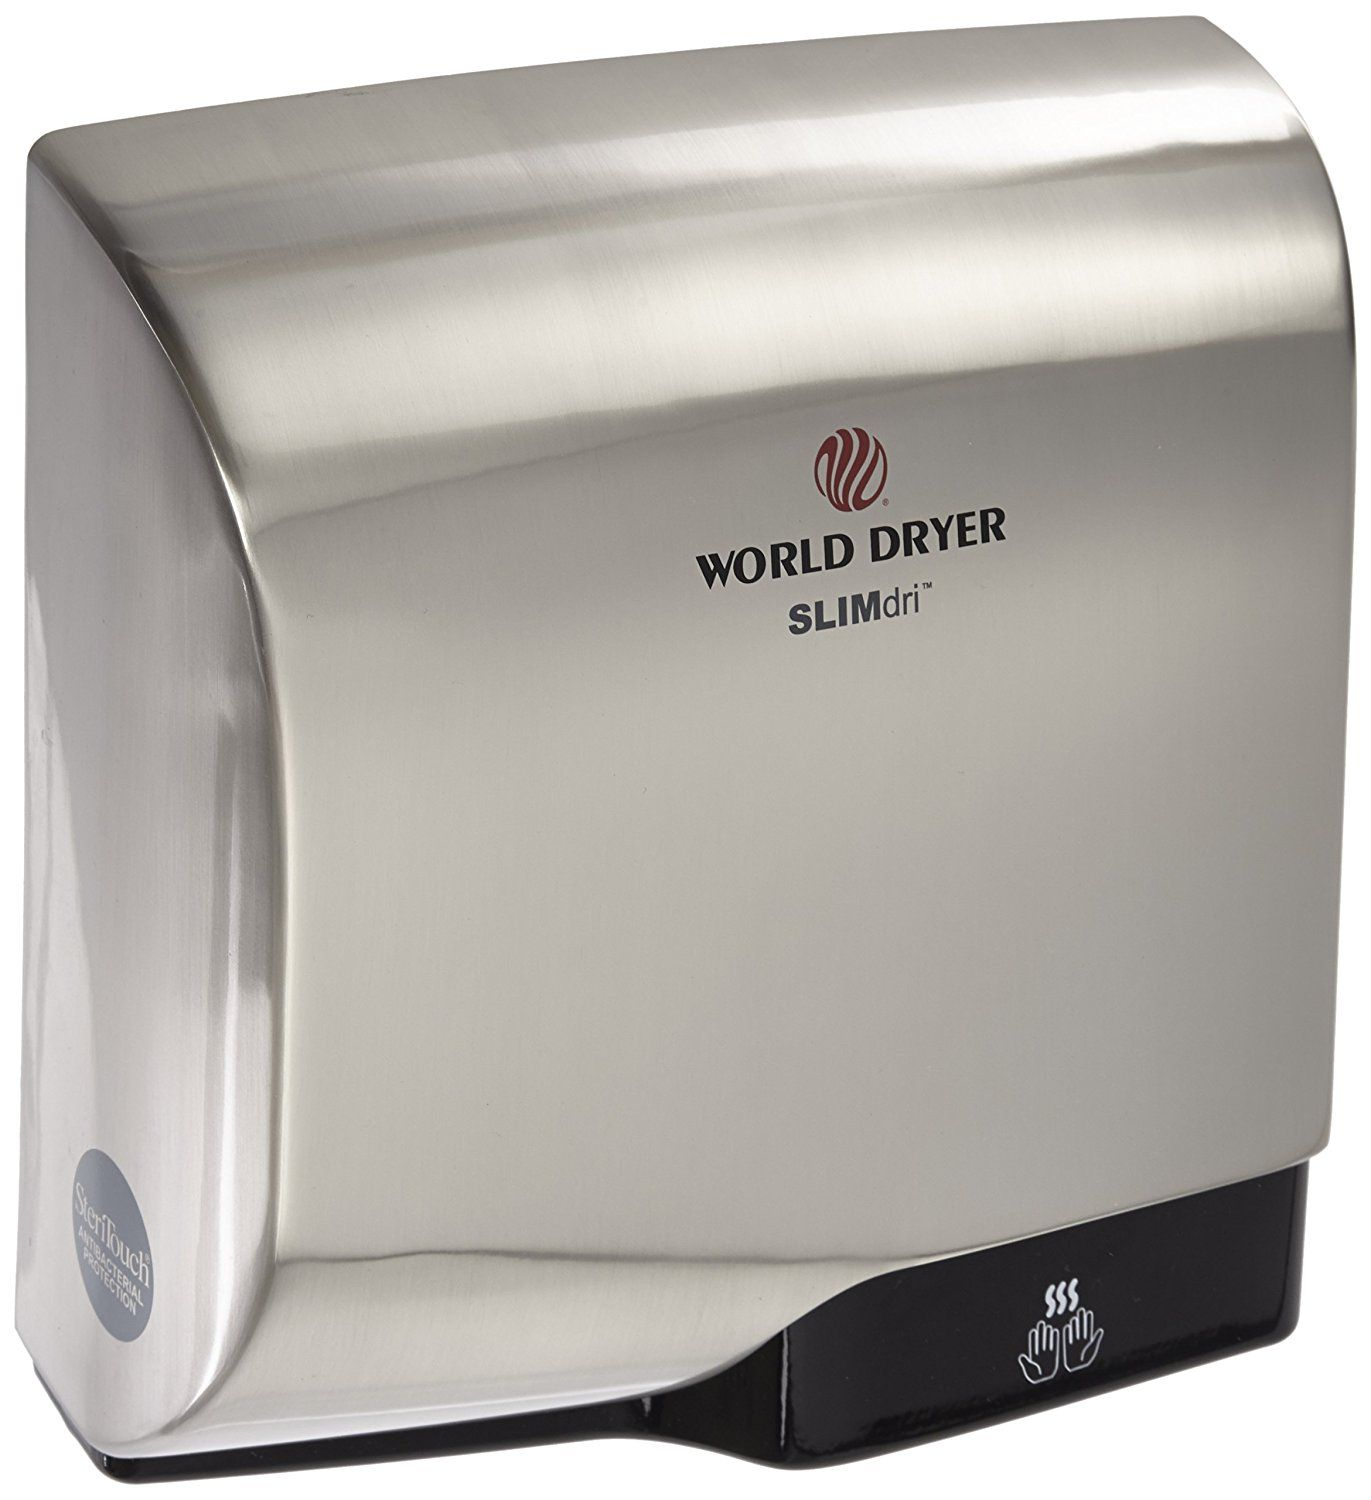 Hand Dryers For Bathrooms Plans World Dryer L971 Slimdri Surface Mounted Ada Compliant Automatic .